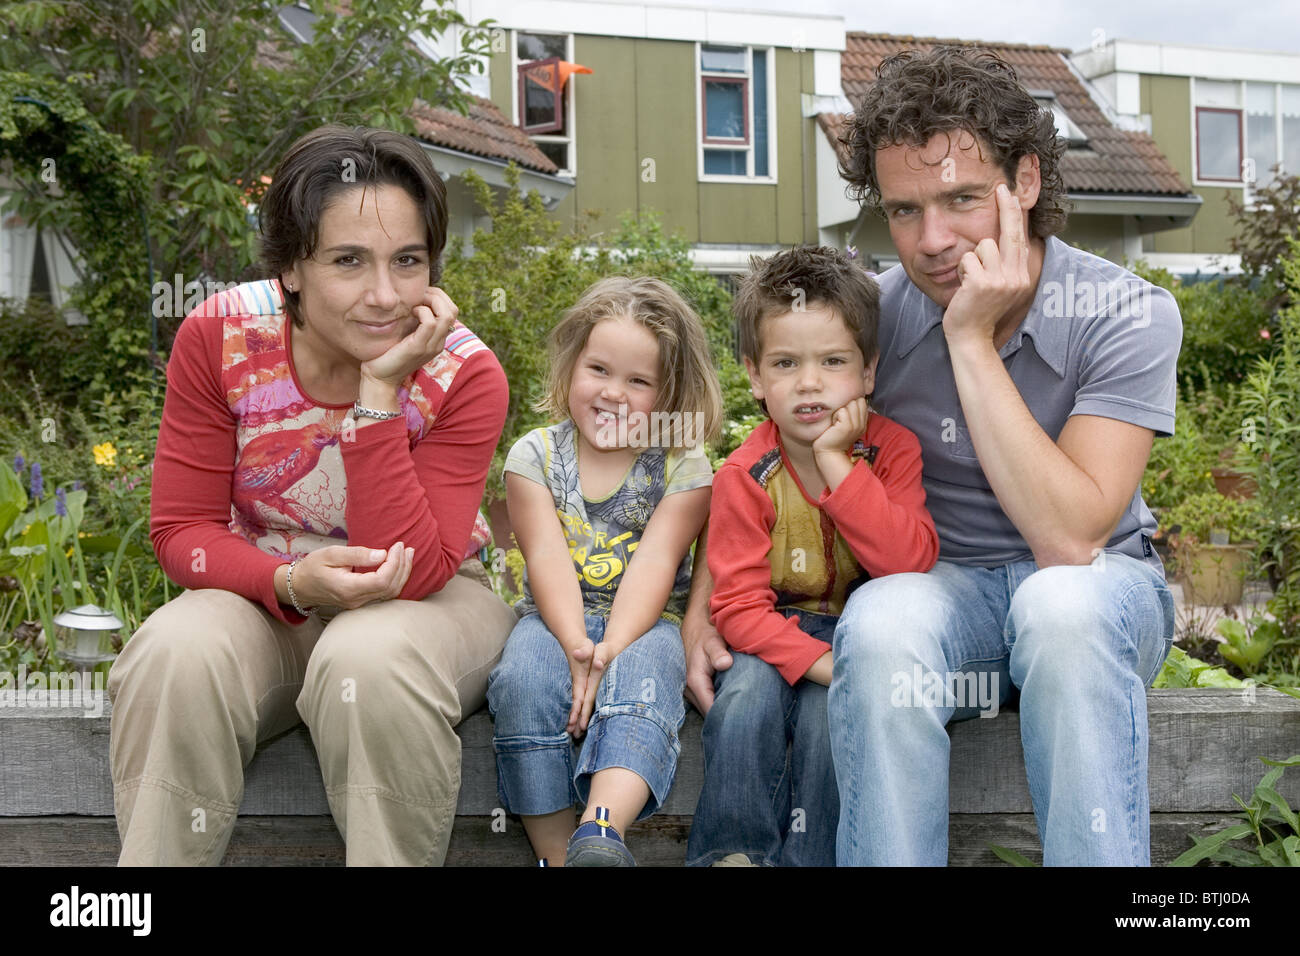 Nuclear Family Portrait Stock Photo